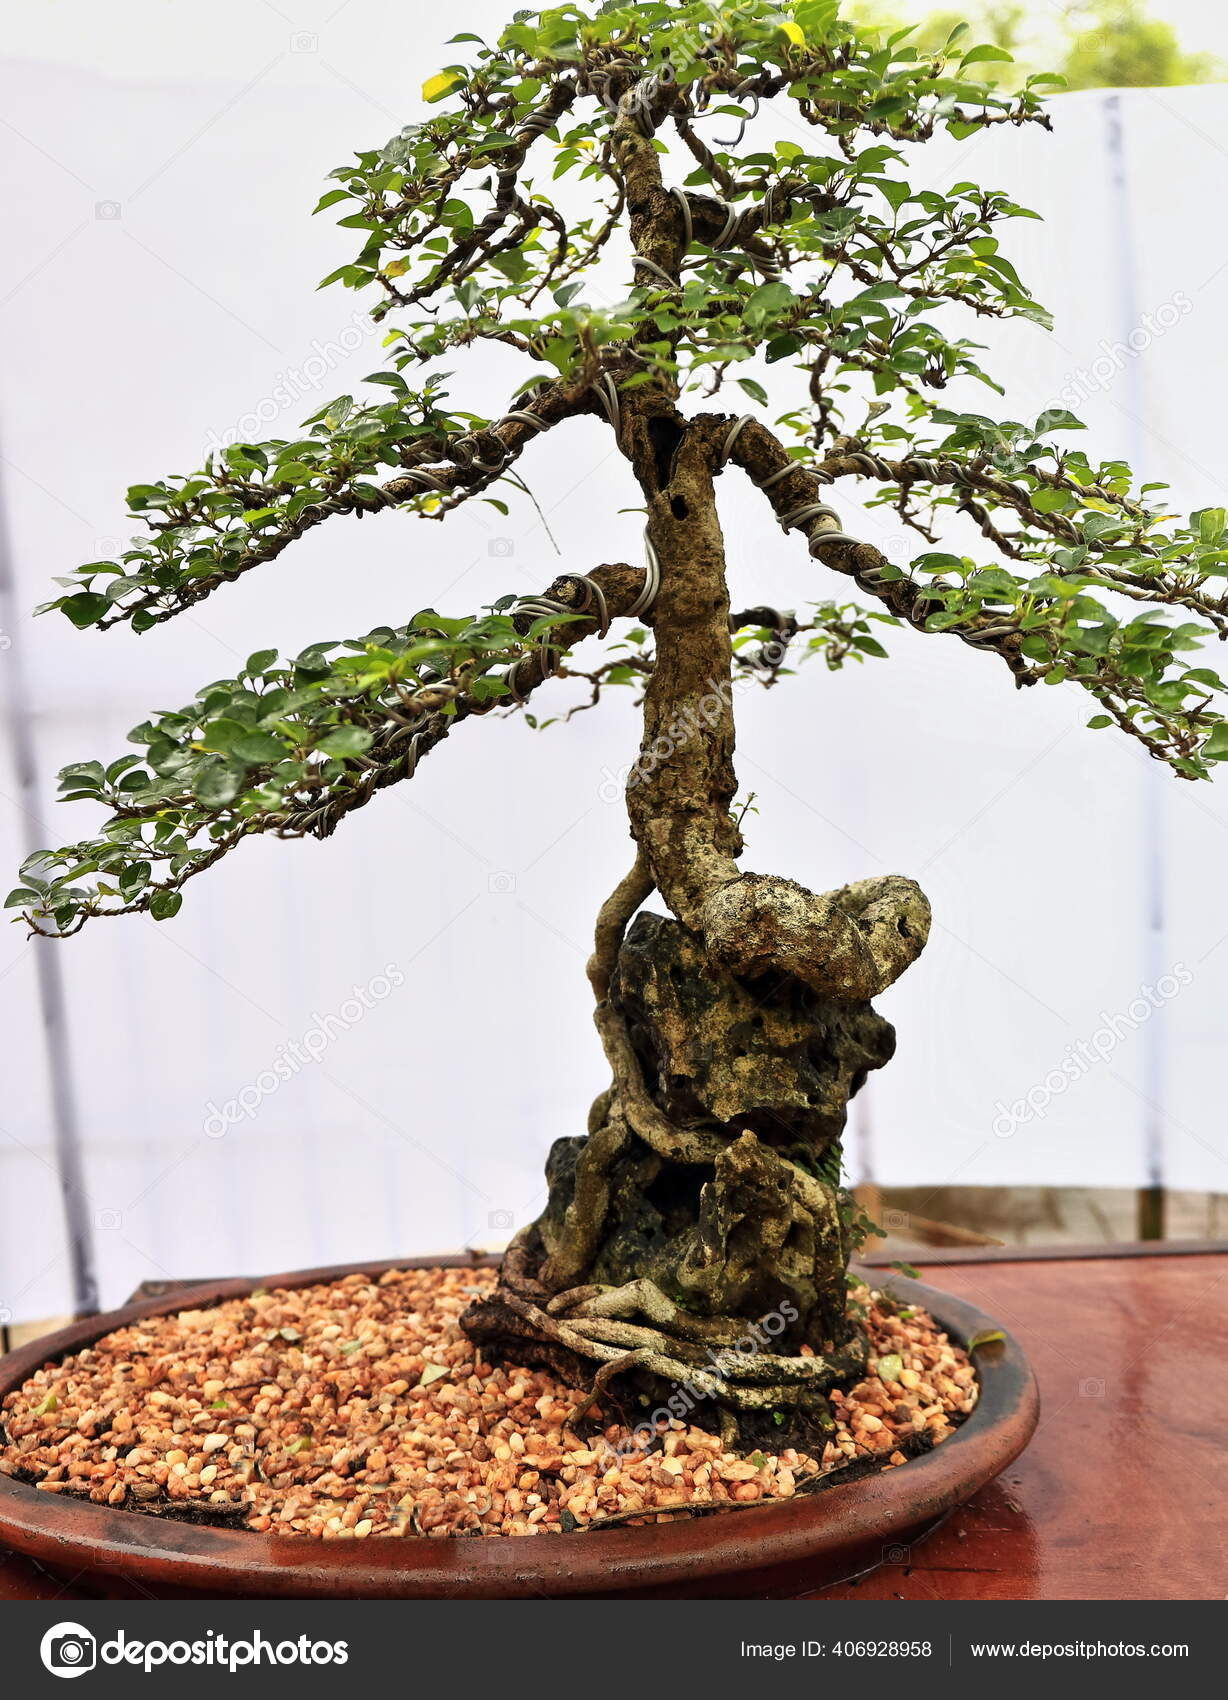 Bonsai Tray Planting Japanese Art Cultivating Small Trees Containers Mimic Stock Photo C Rweisswald 406928958